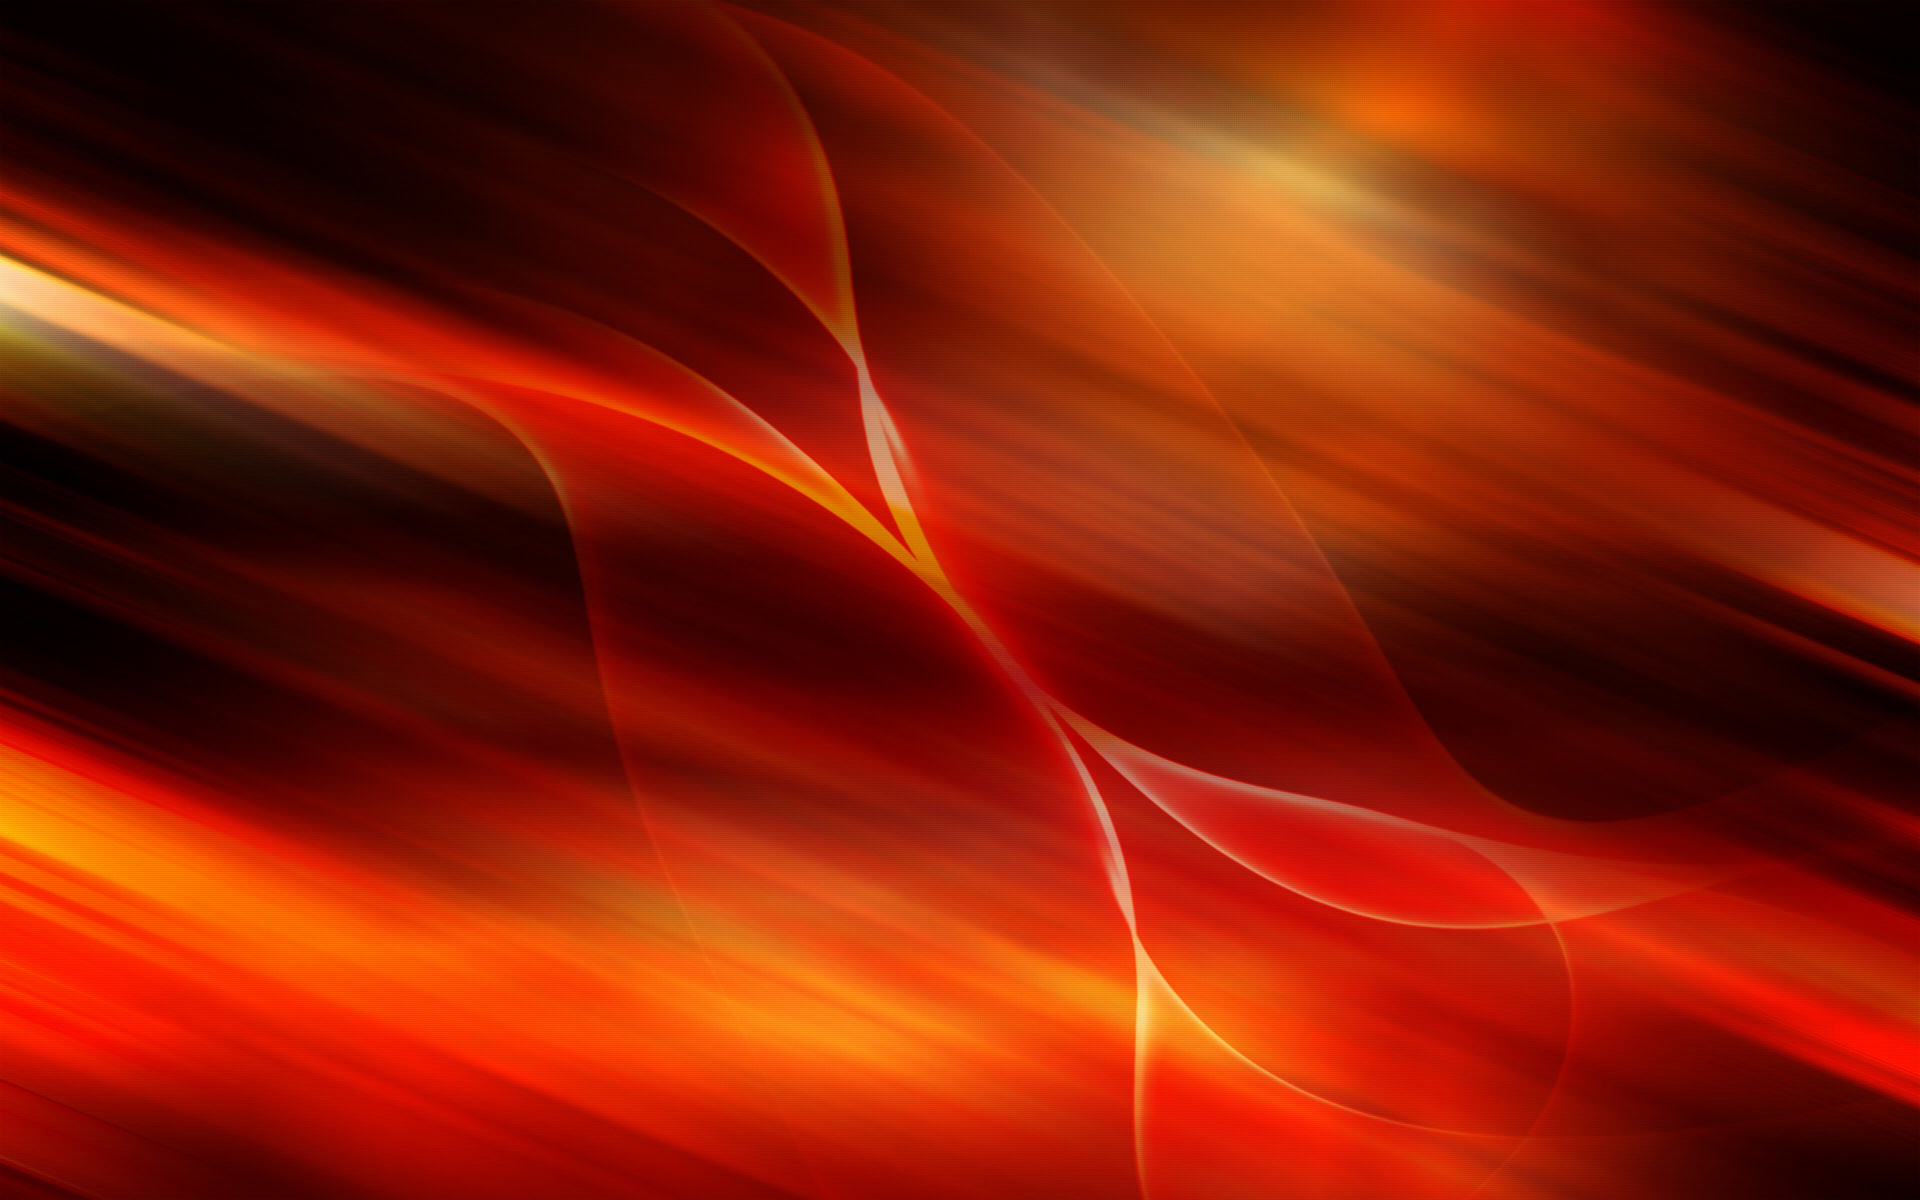 Flame Background #3185